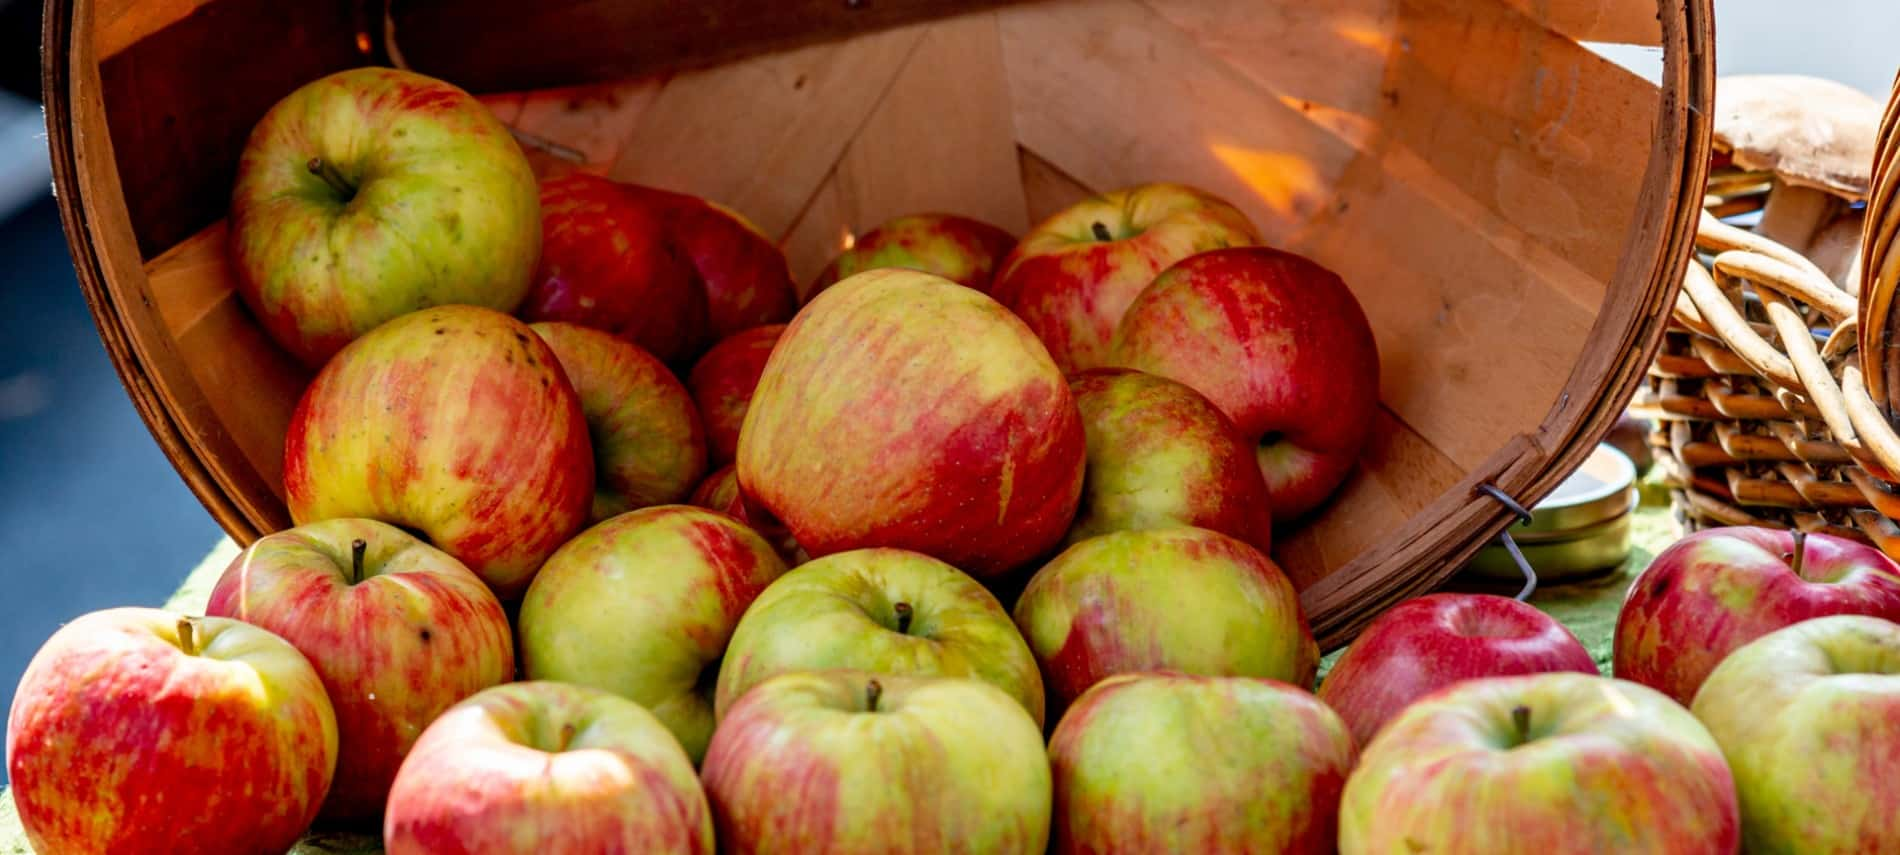 Brown bushel basket tipped over spilling out several green and red apples